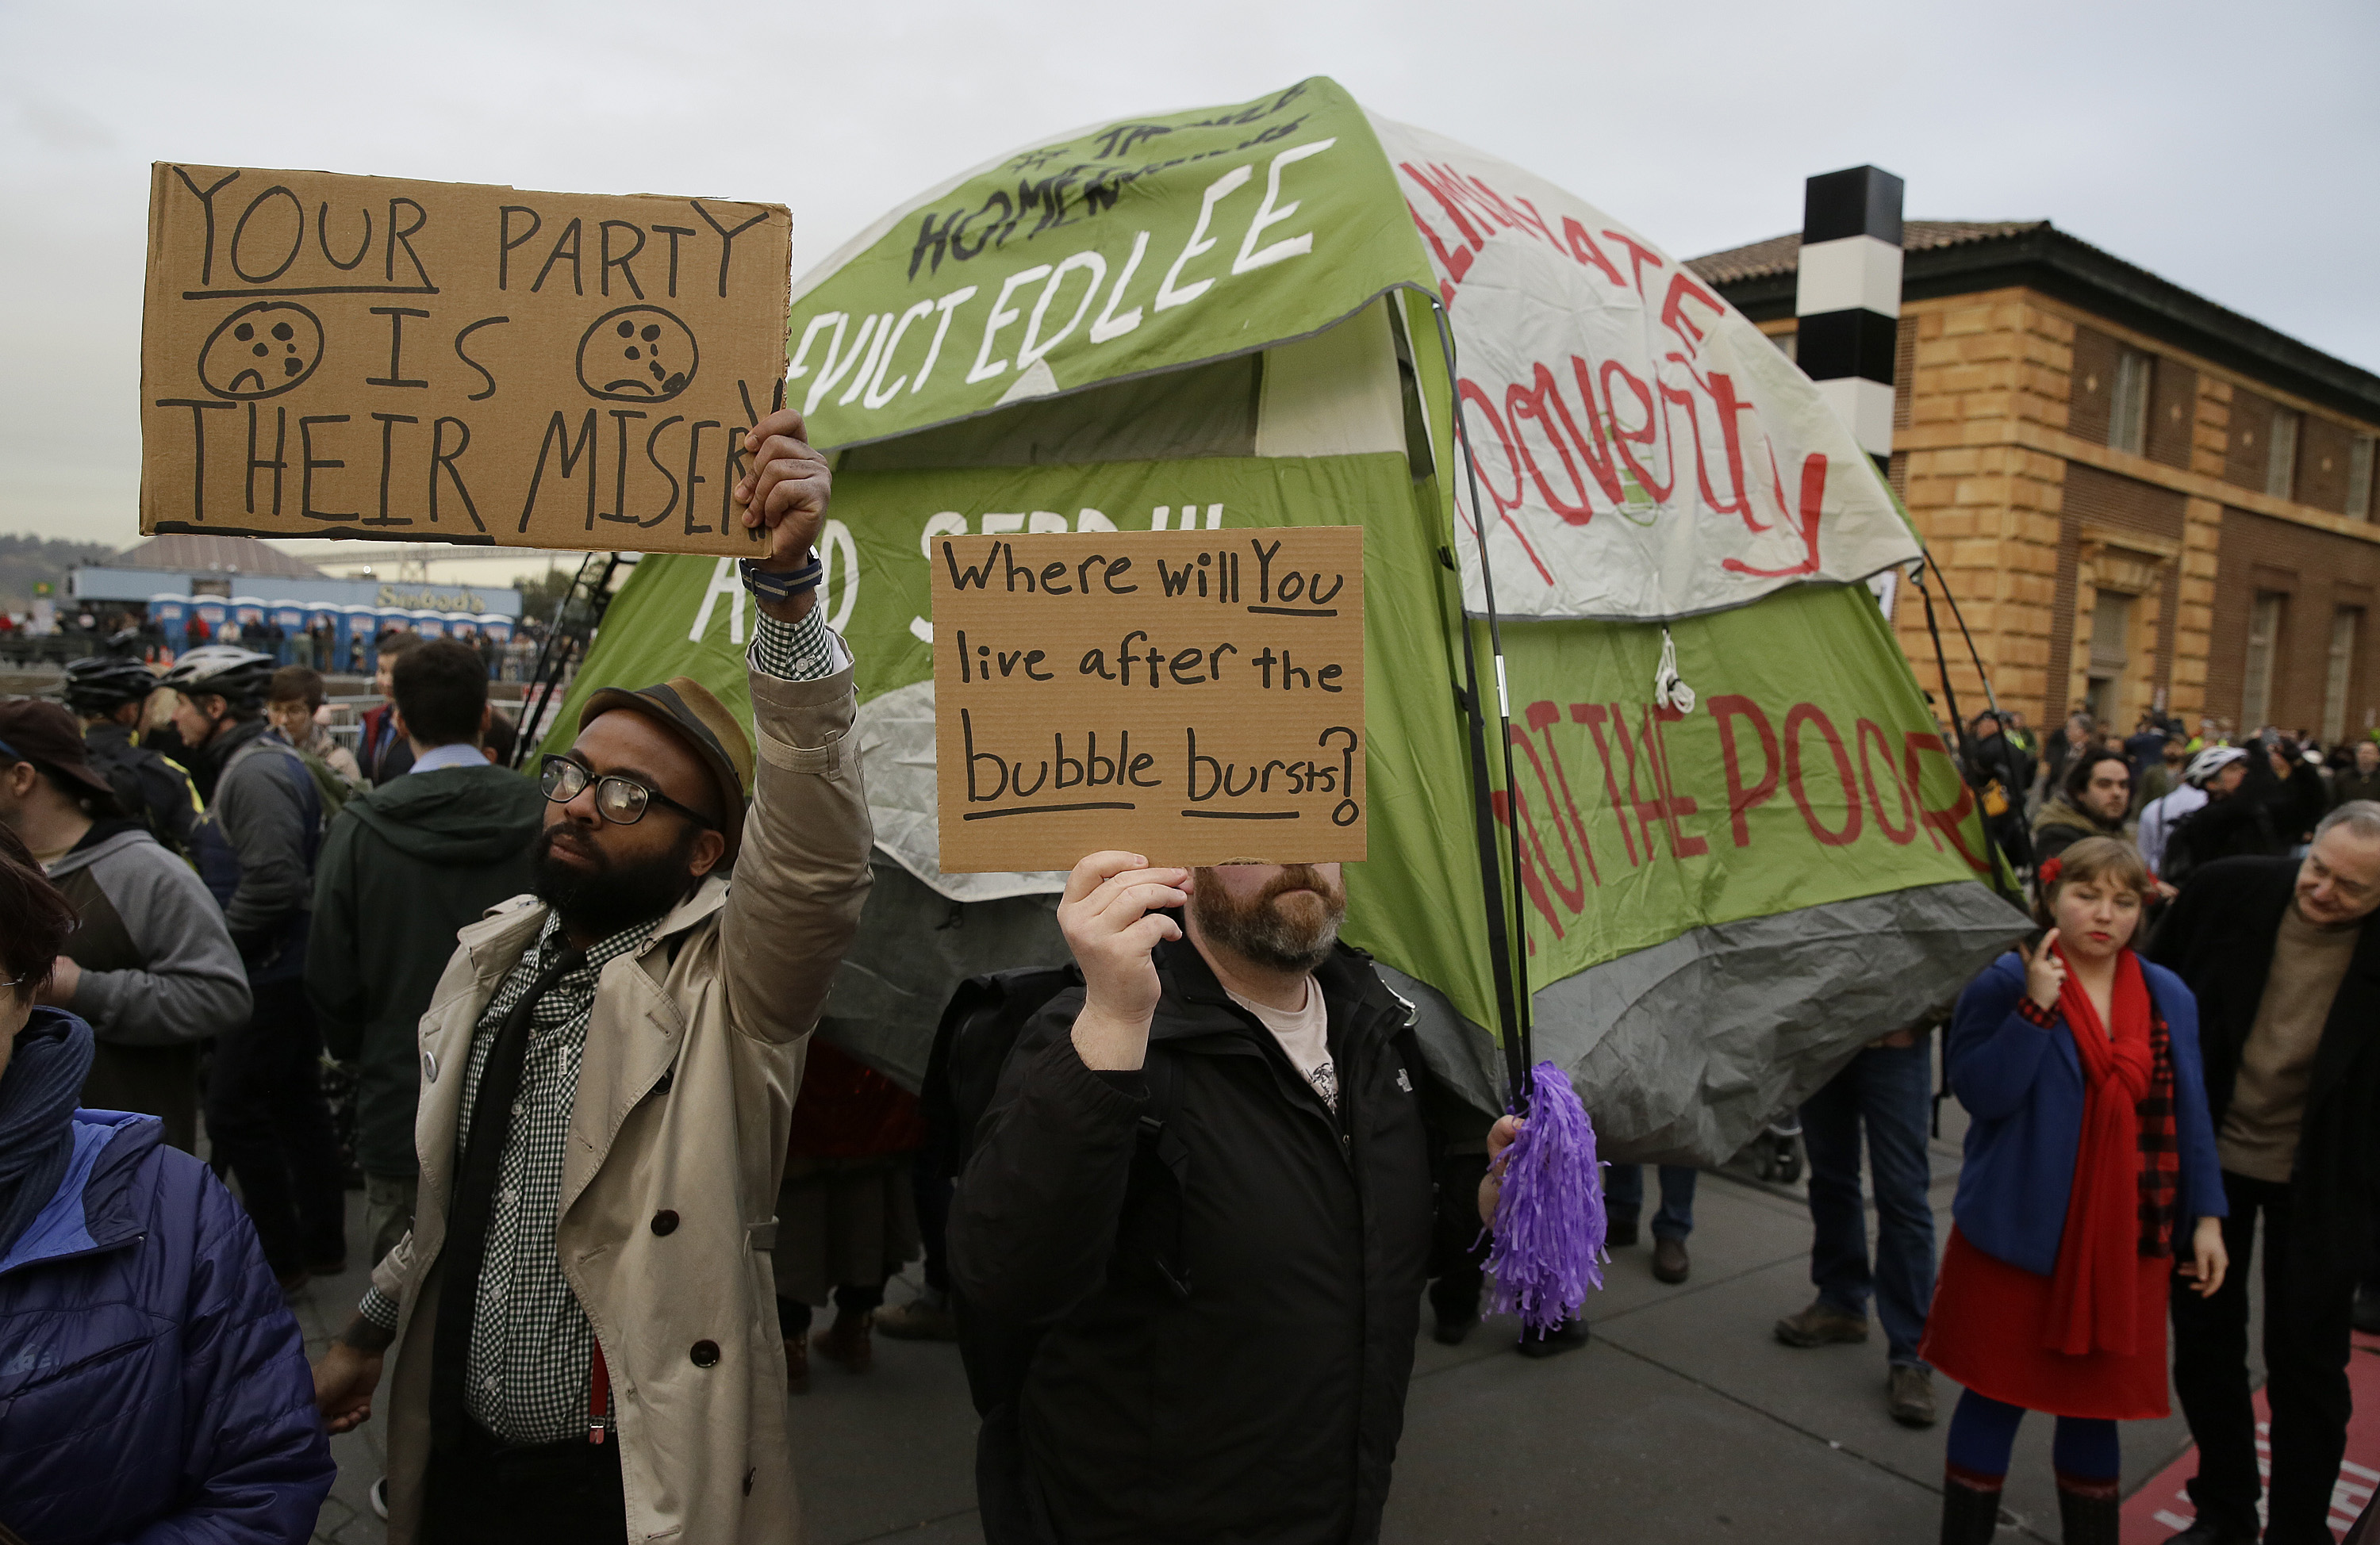 People hold up signs and a tent during a protest to demand city officials do more to help homeless people outside Super Bowl City, in San Francisco on Feb. 3, 2016.